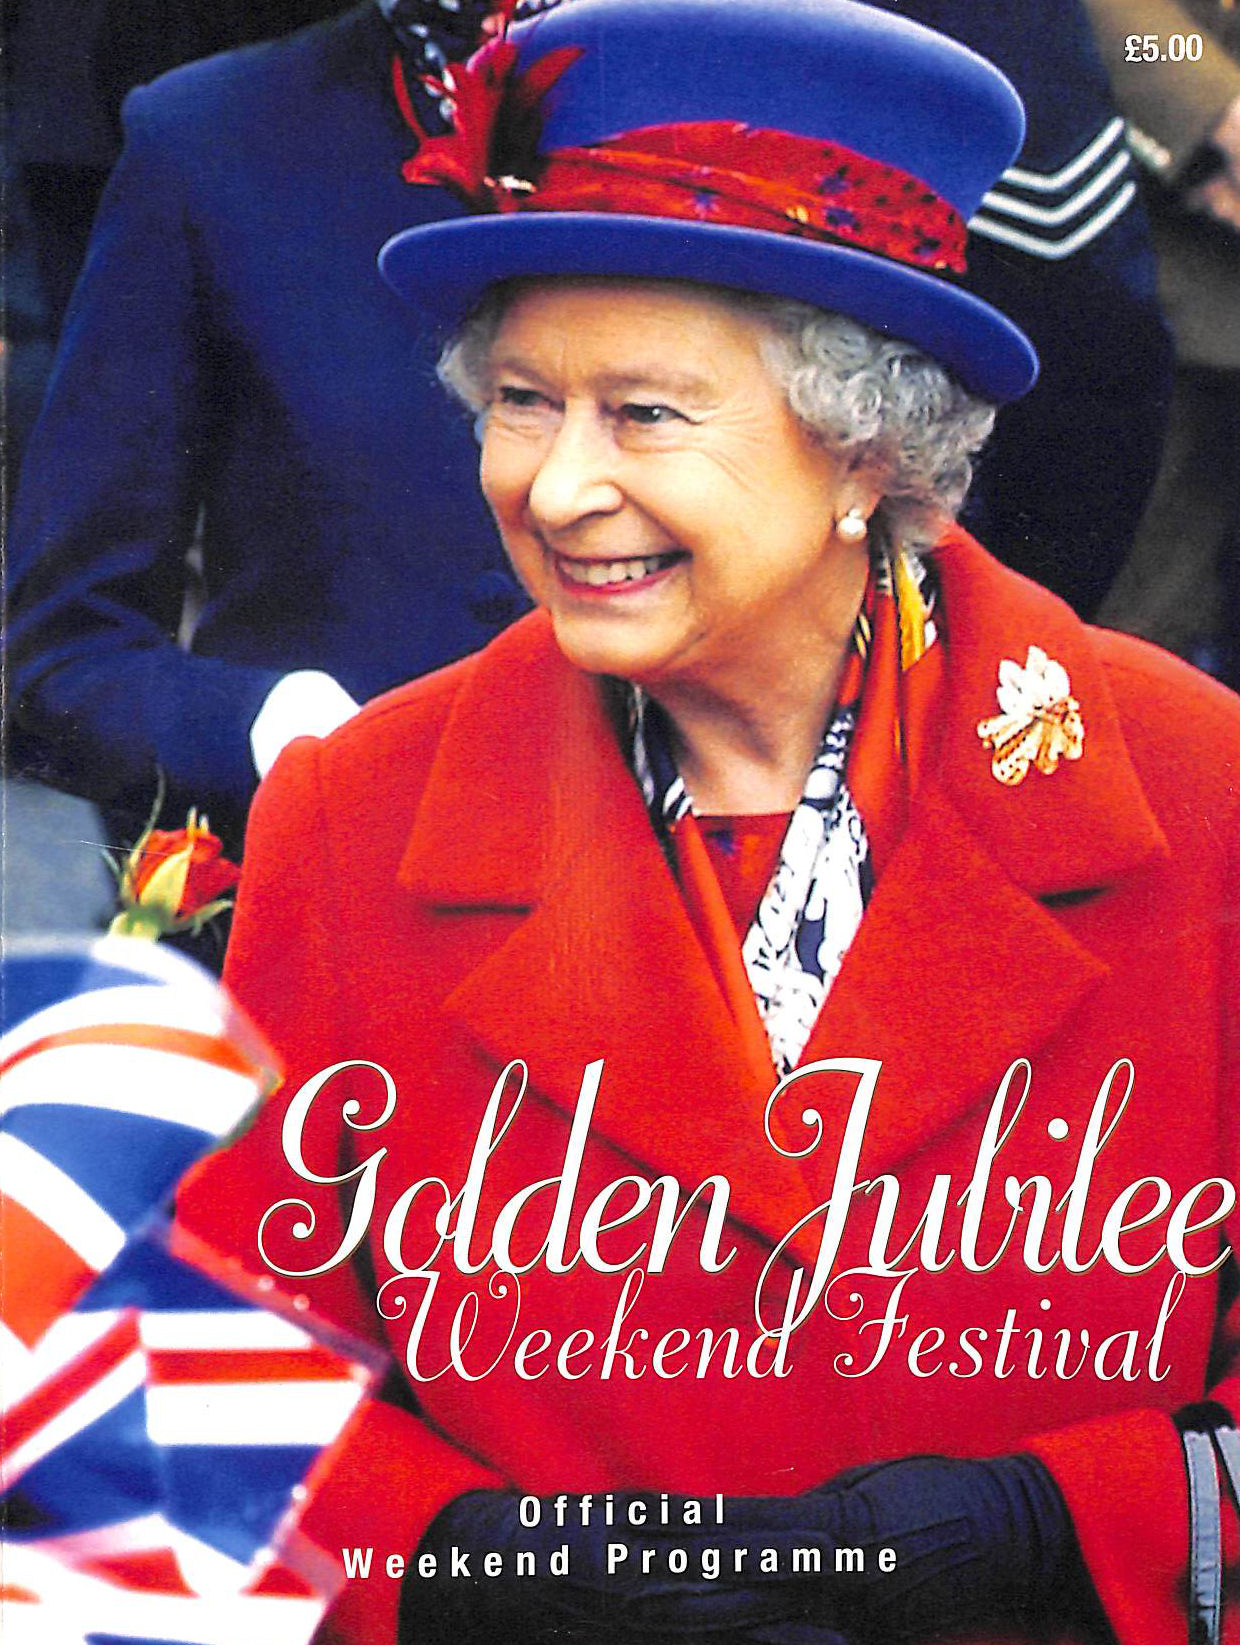 Image for Golden Jubilee: Weekend Festival (Official Programme)